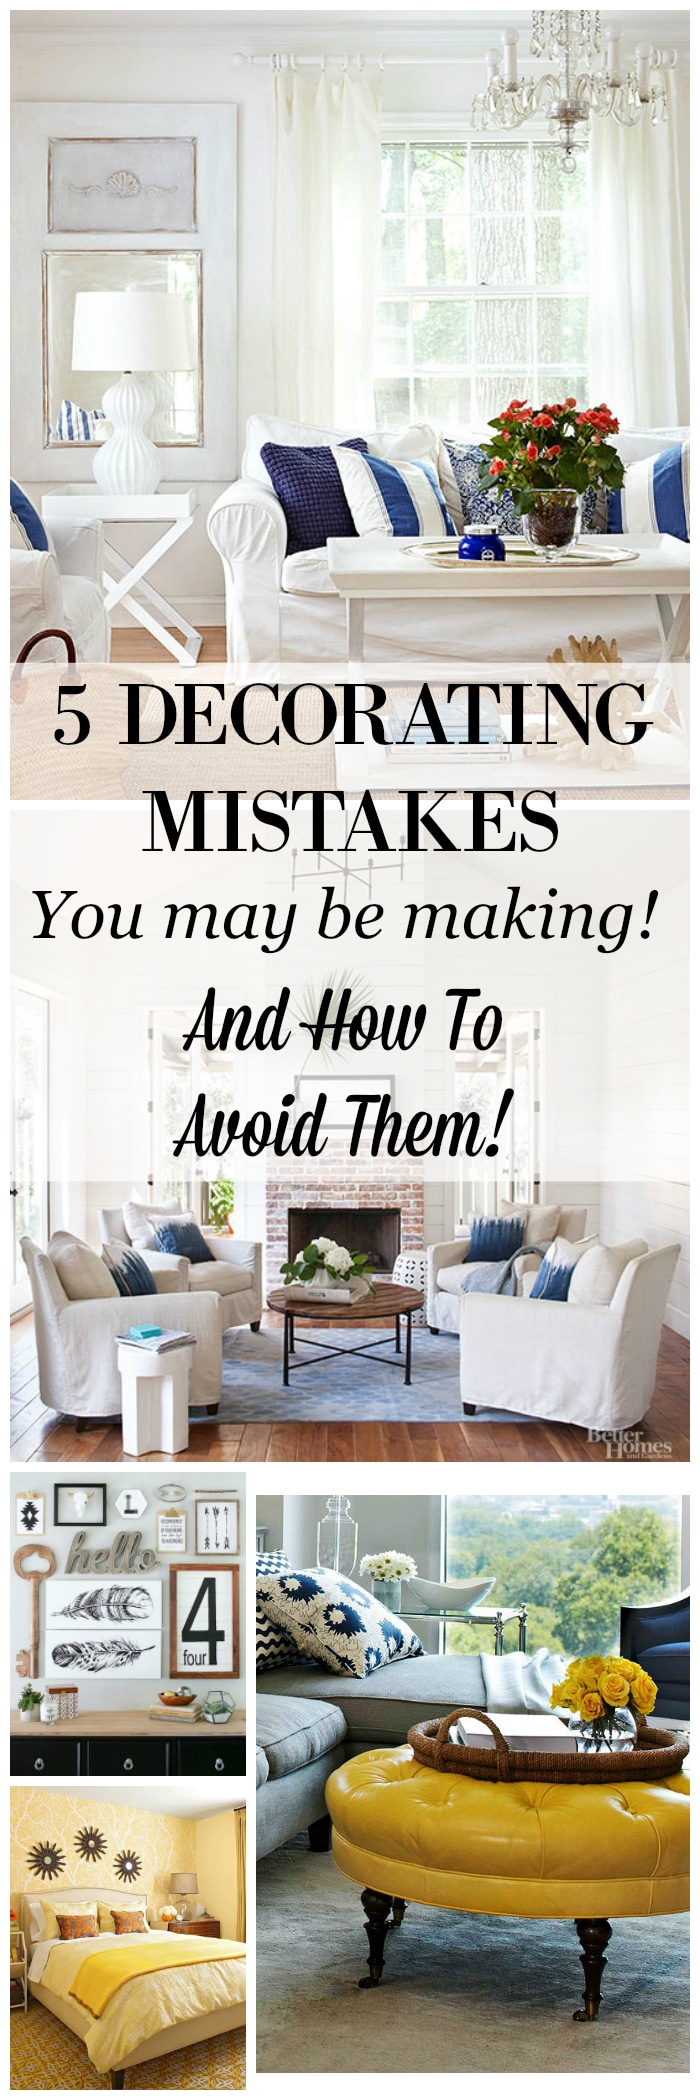 5 Decorating Mistakes That Make Your Home Look Cluttered - Setting ...